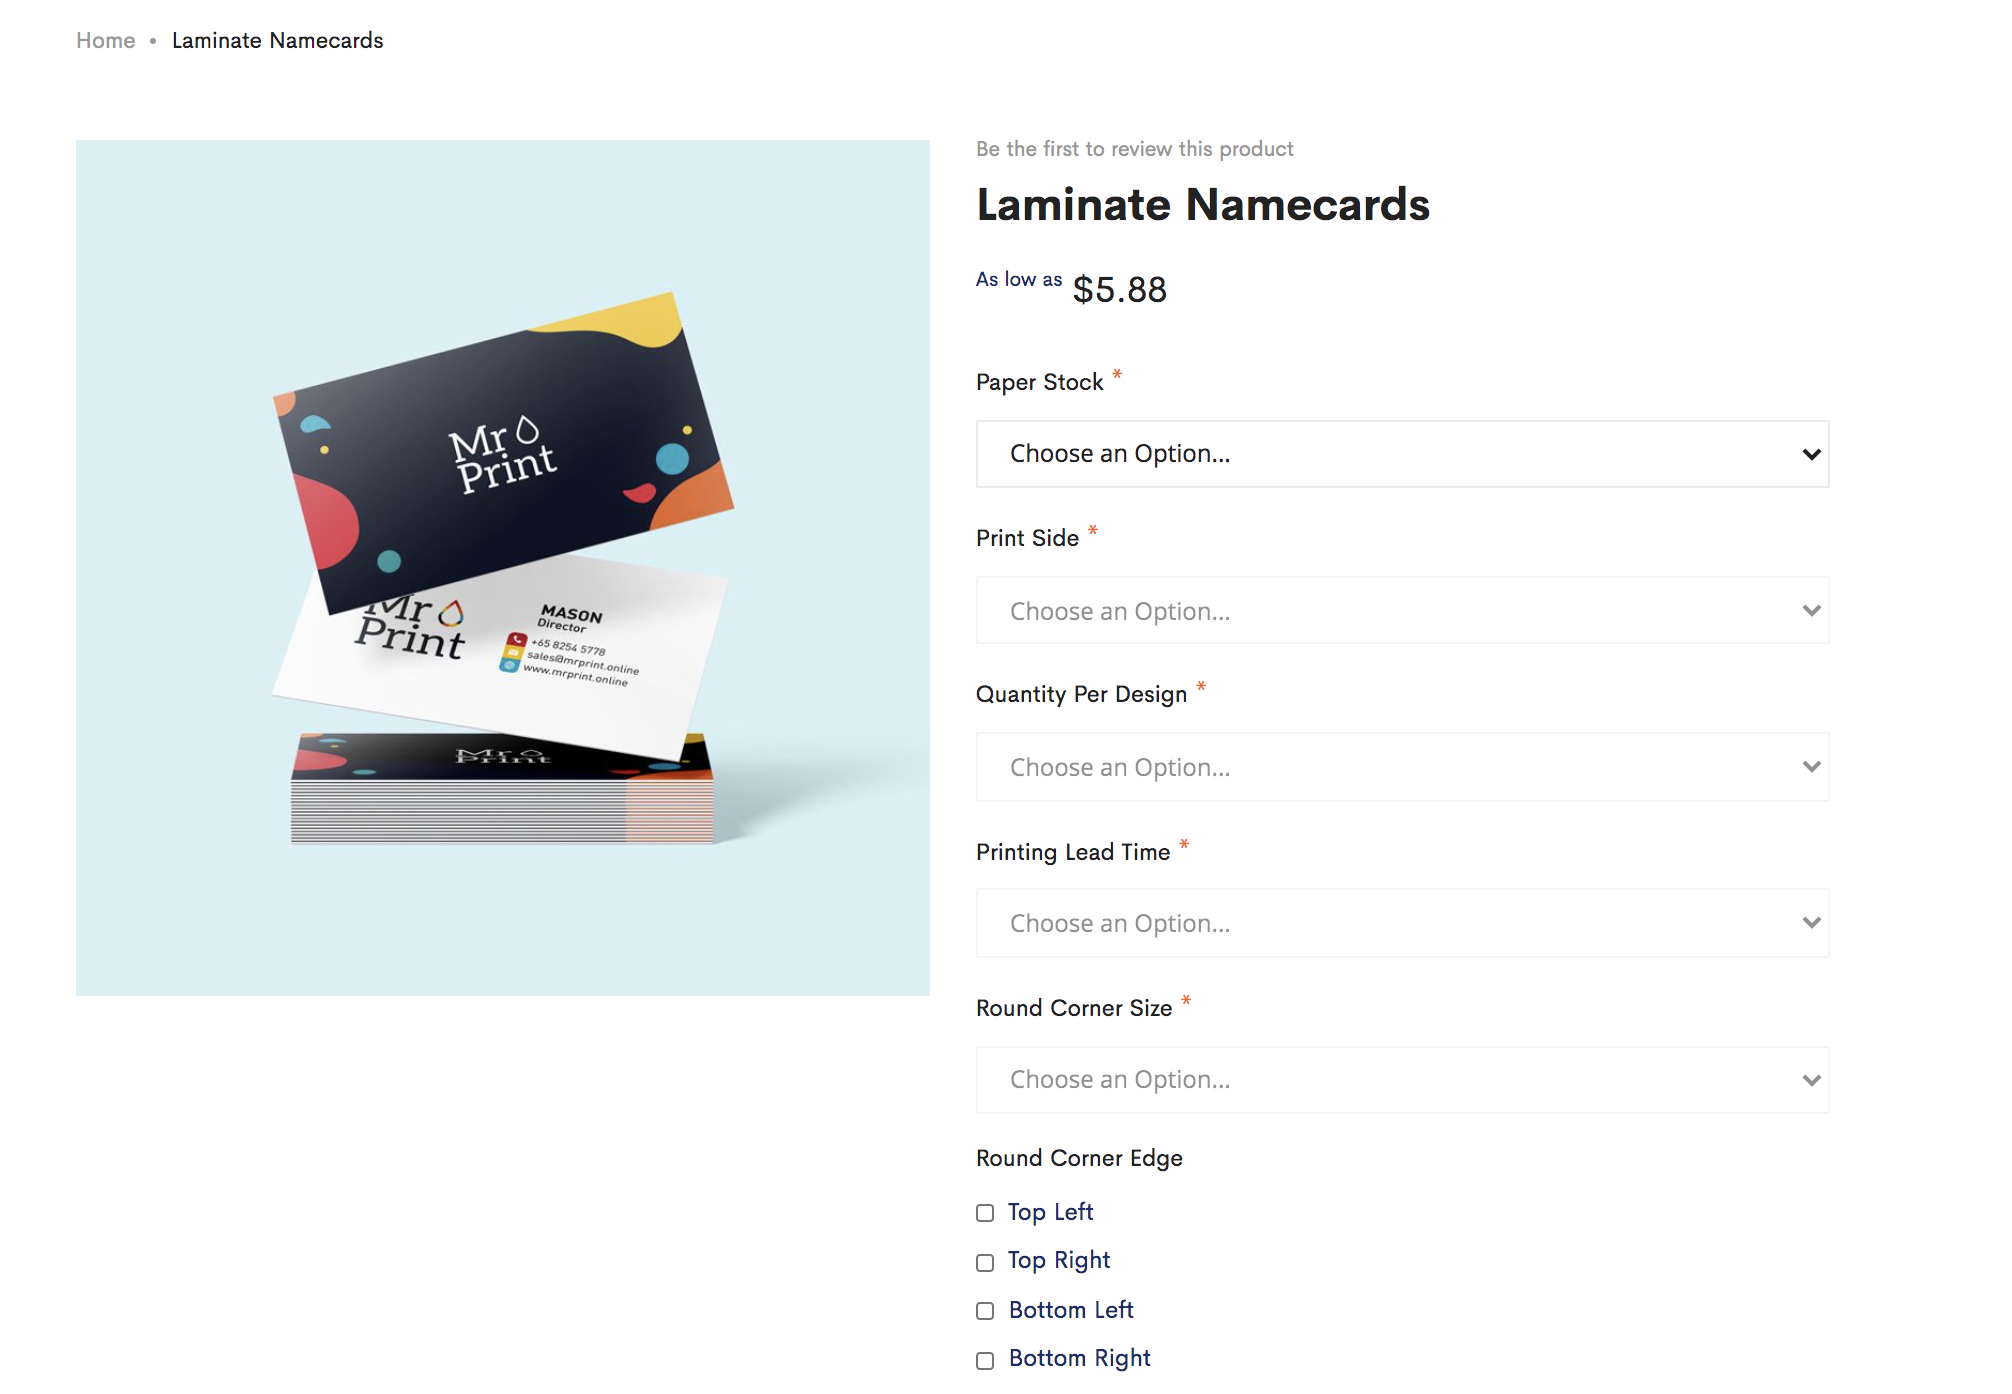 How to Order your Namecards